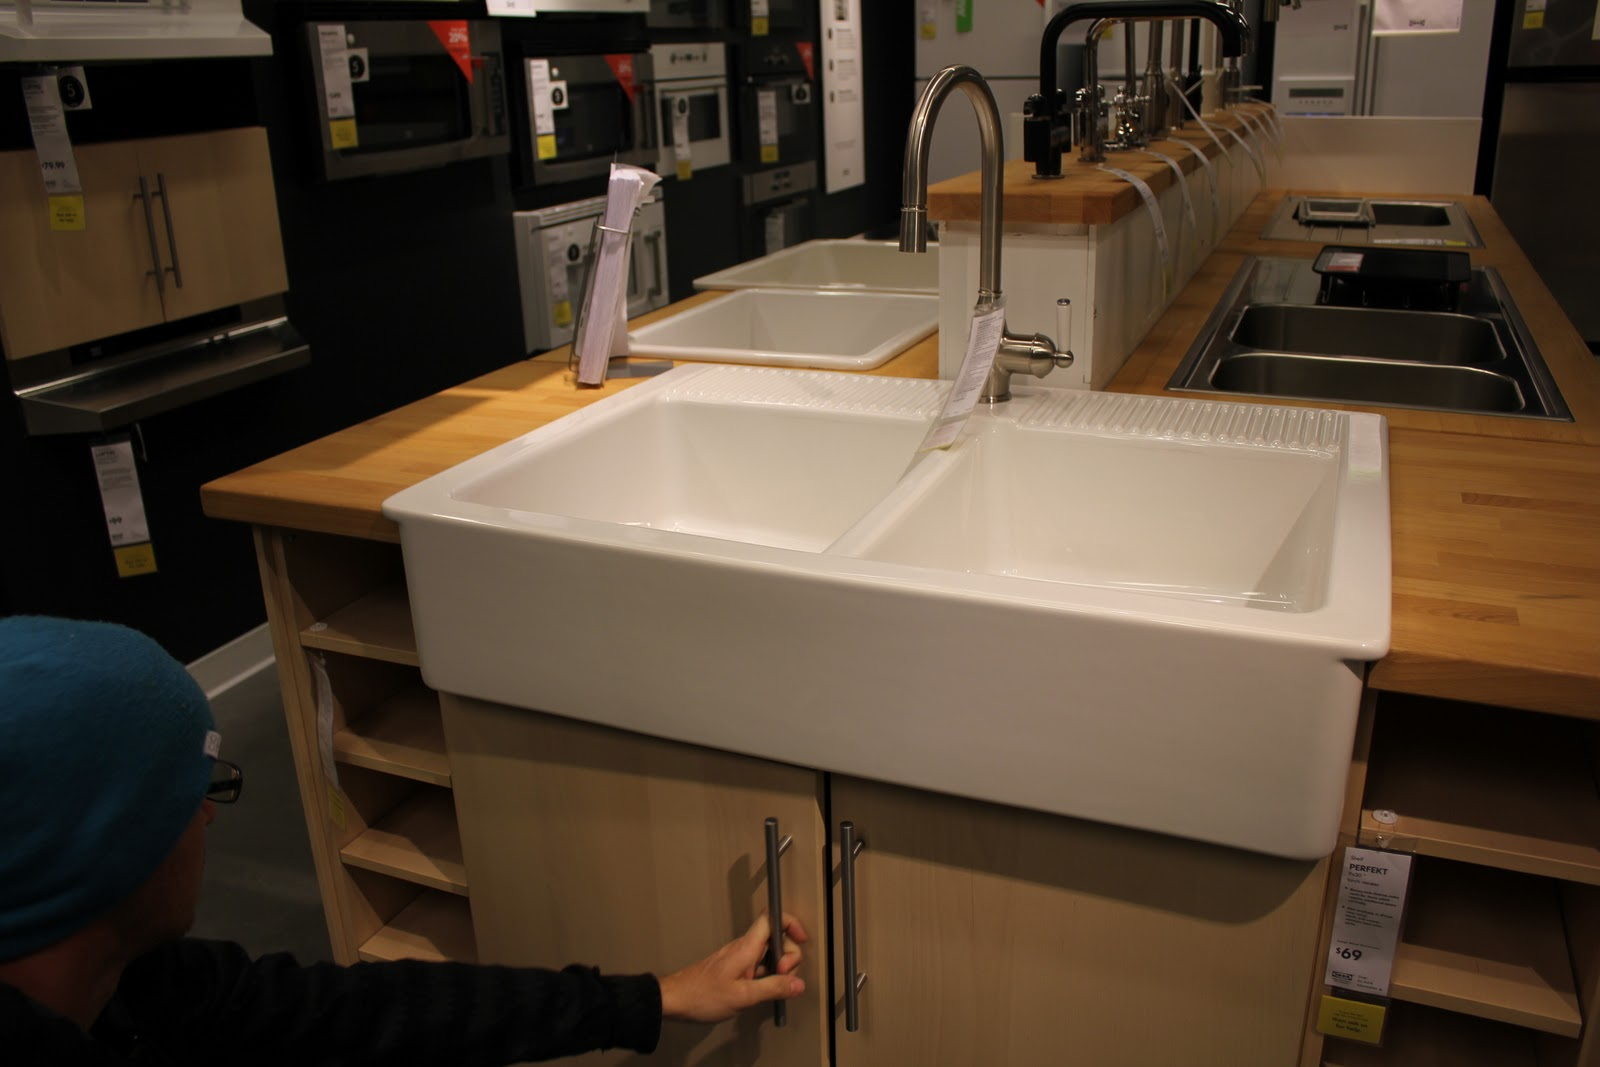 Farm Sinks At Lowes : Lowes Farm Sinks http://www.lovemattandkara.com/2011_03_01_archive ...